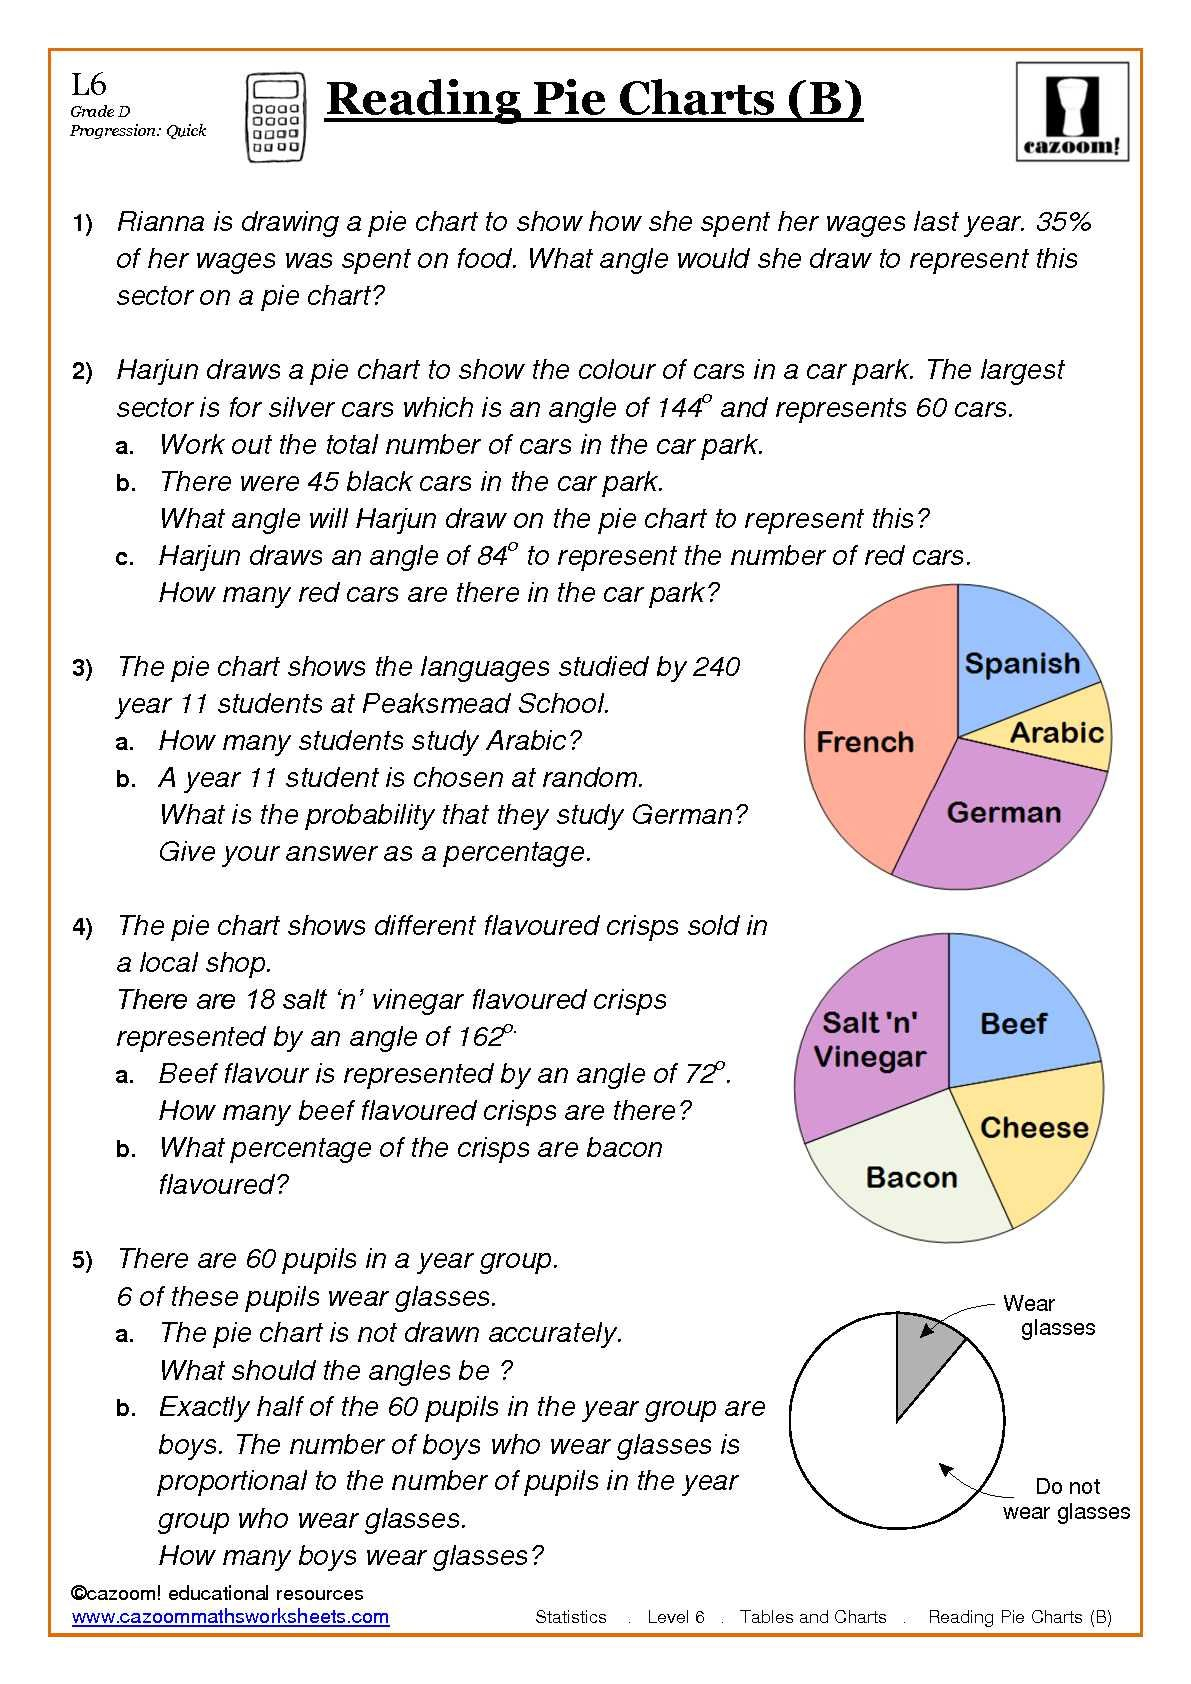 Maths Worksheets | Things To Wear | Math Worksheets, Worksheets For | Free Printable Statistics Worksheets